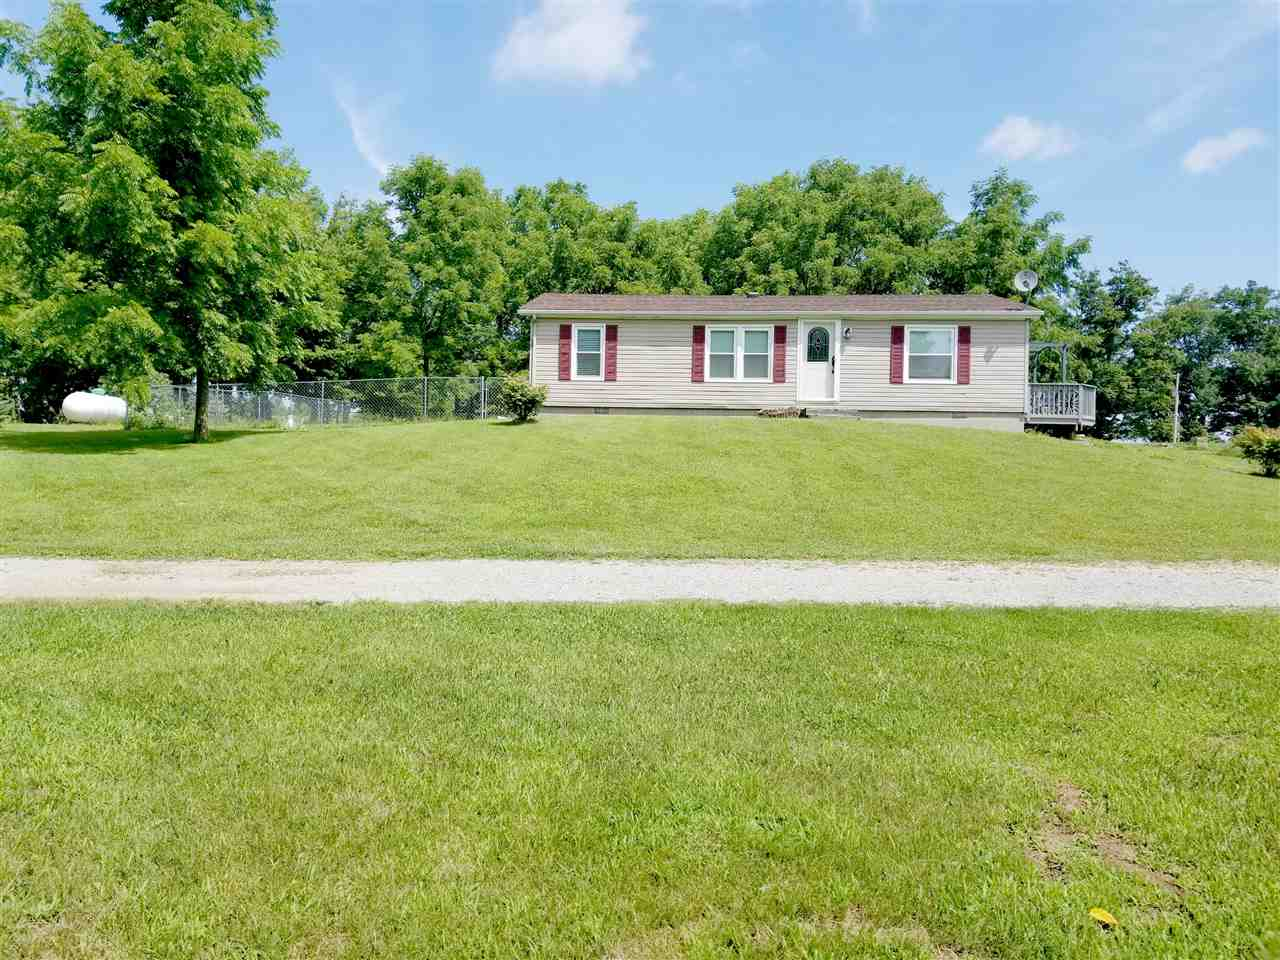 Indiana steuben county orland - Property Photo